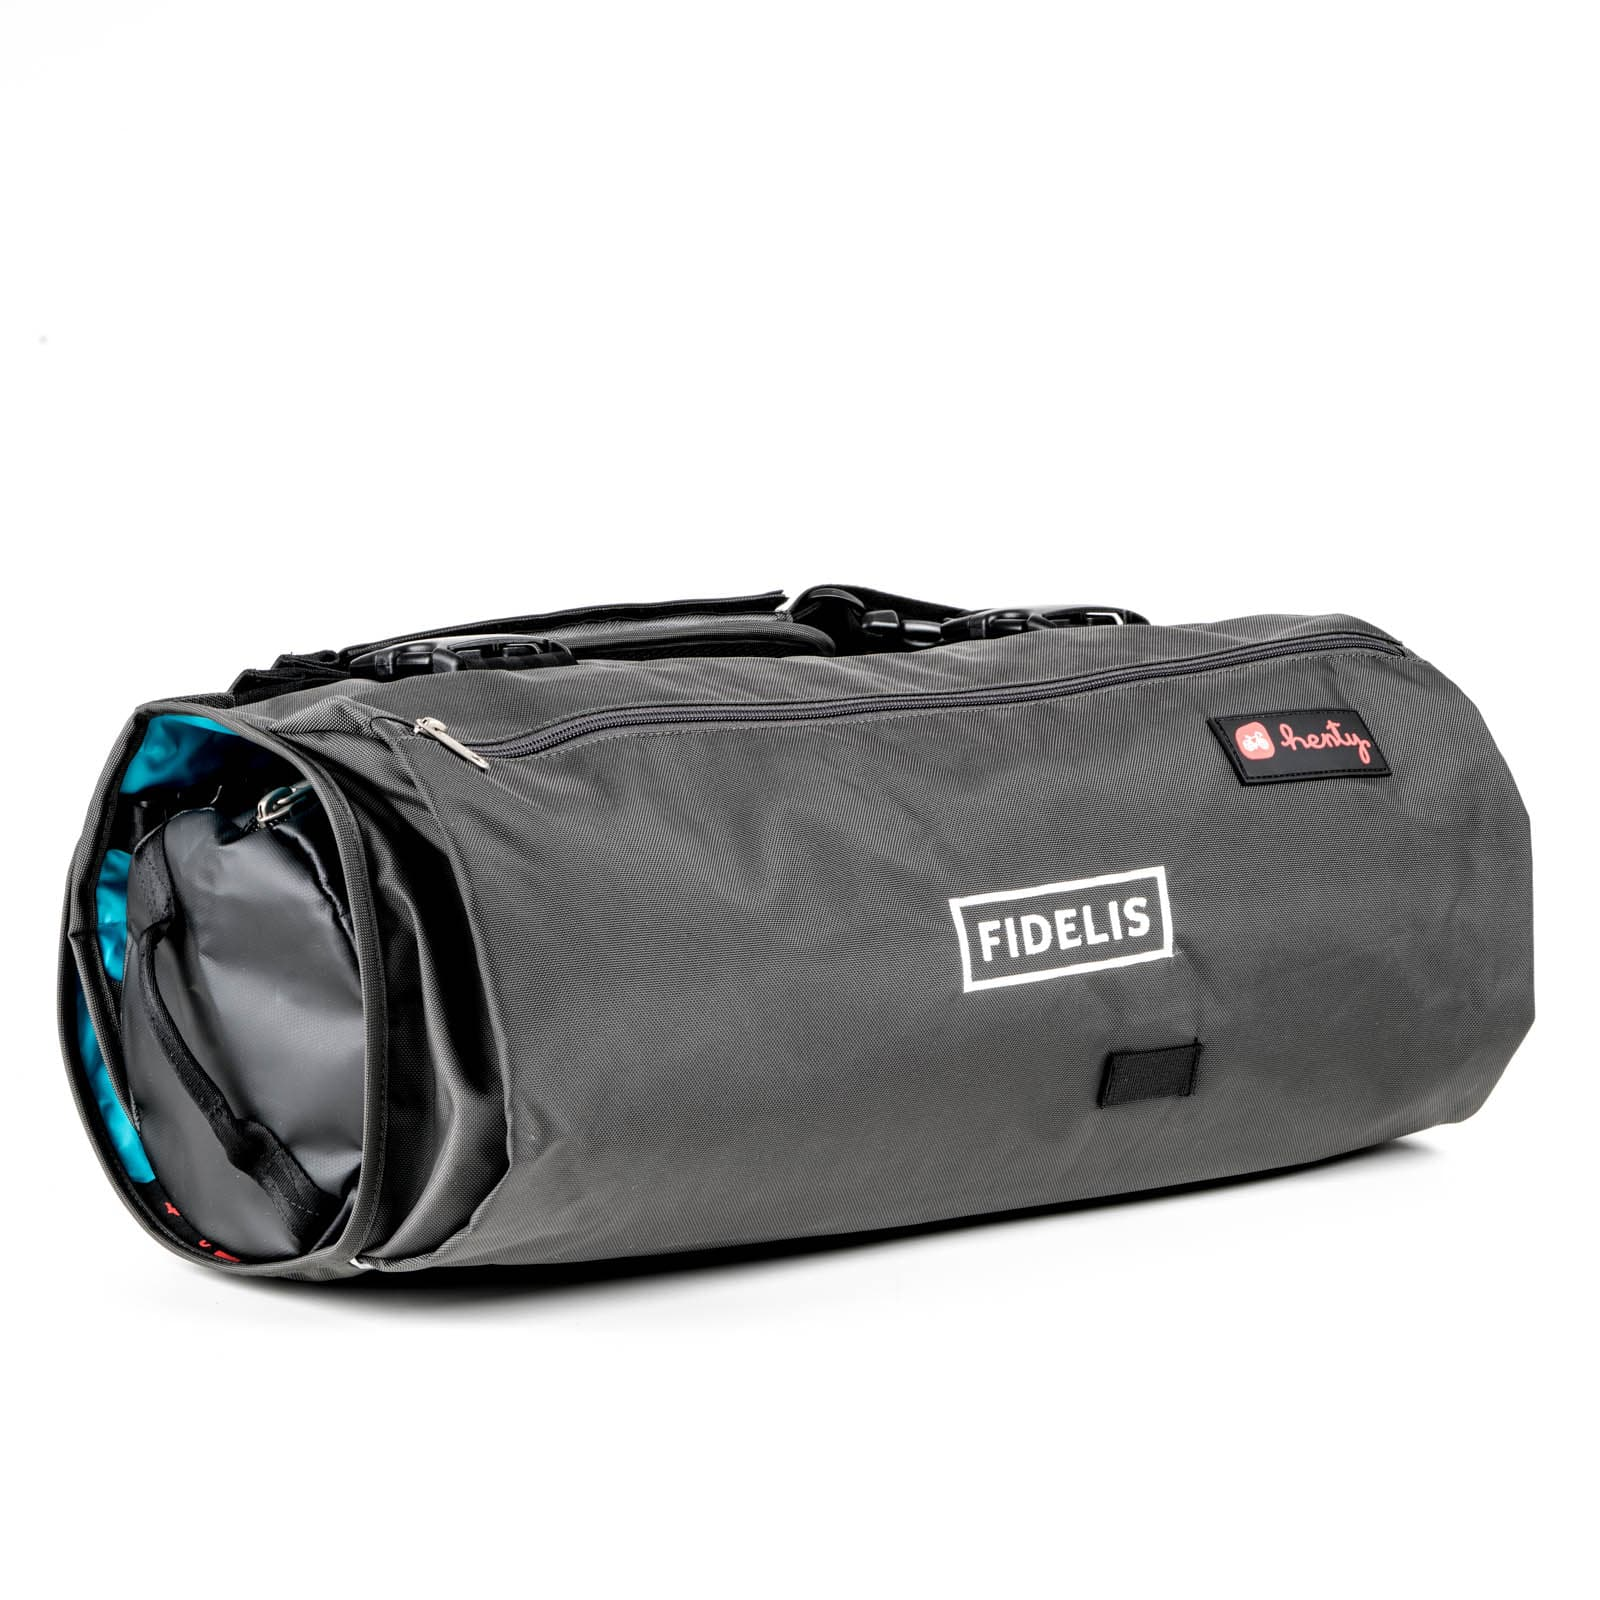 Product photography of a black rolled up bag